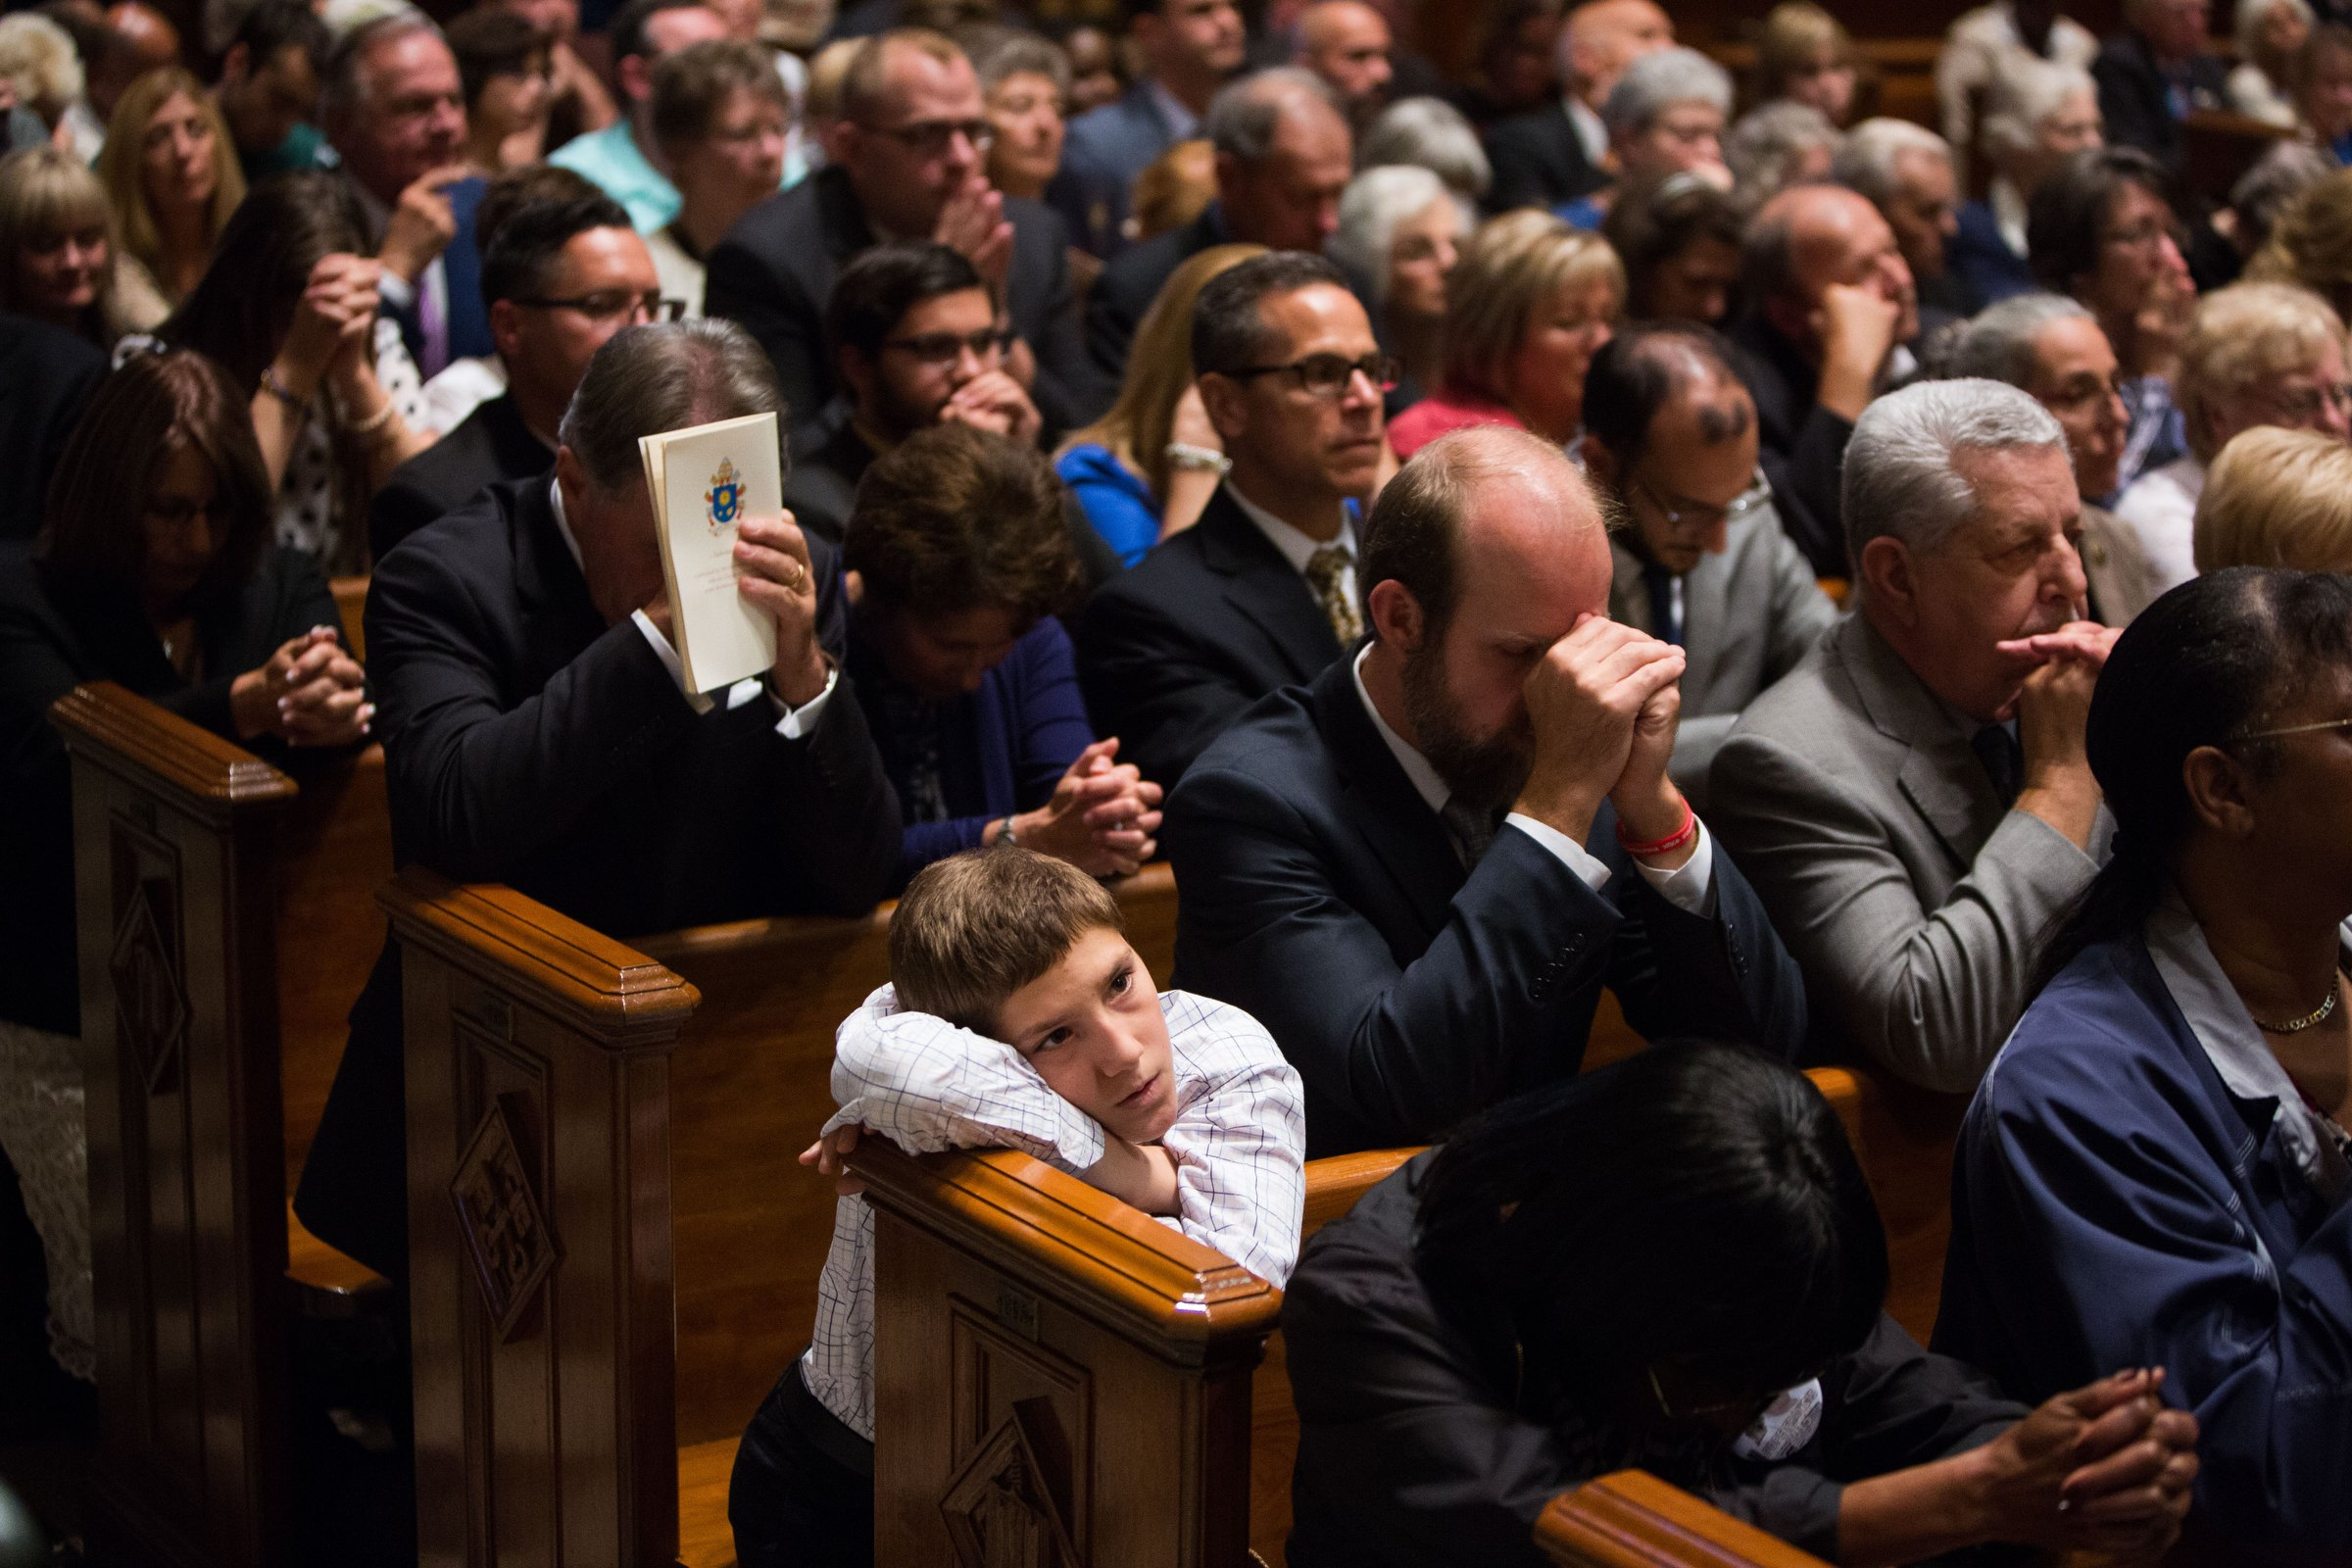 People pray and watch as Pope Francis celebrates mass at the Cathedral Basilica of Saints Peter and Paul in Philadelphia, on Sept. 26, 2015.